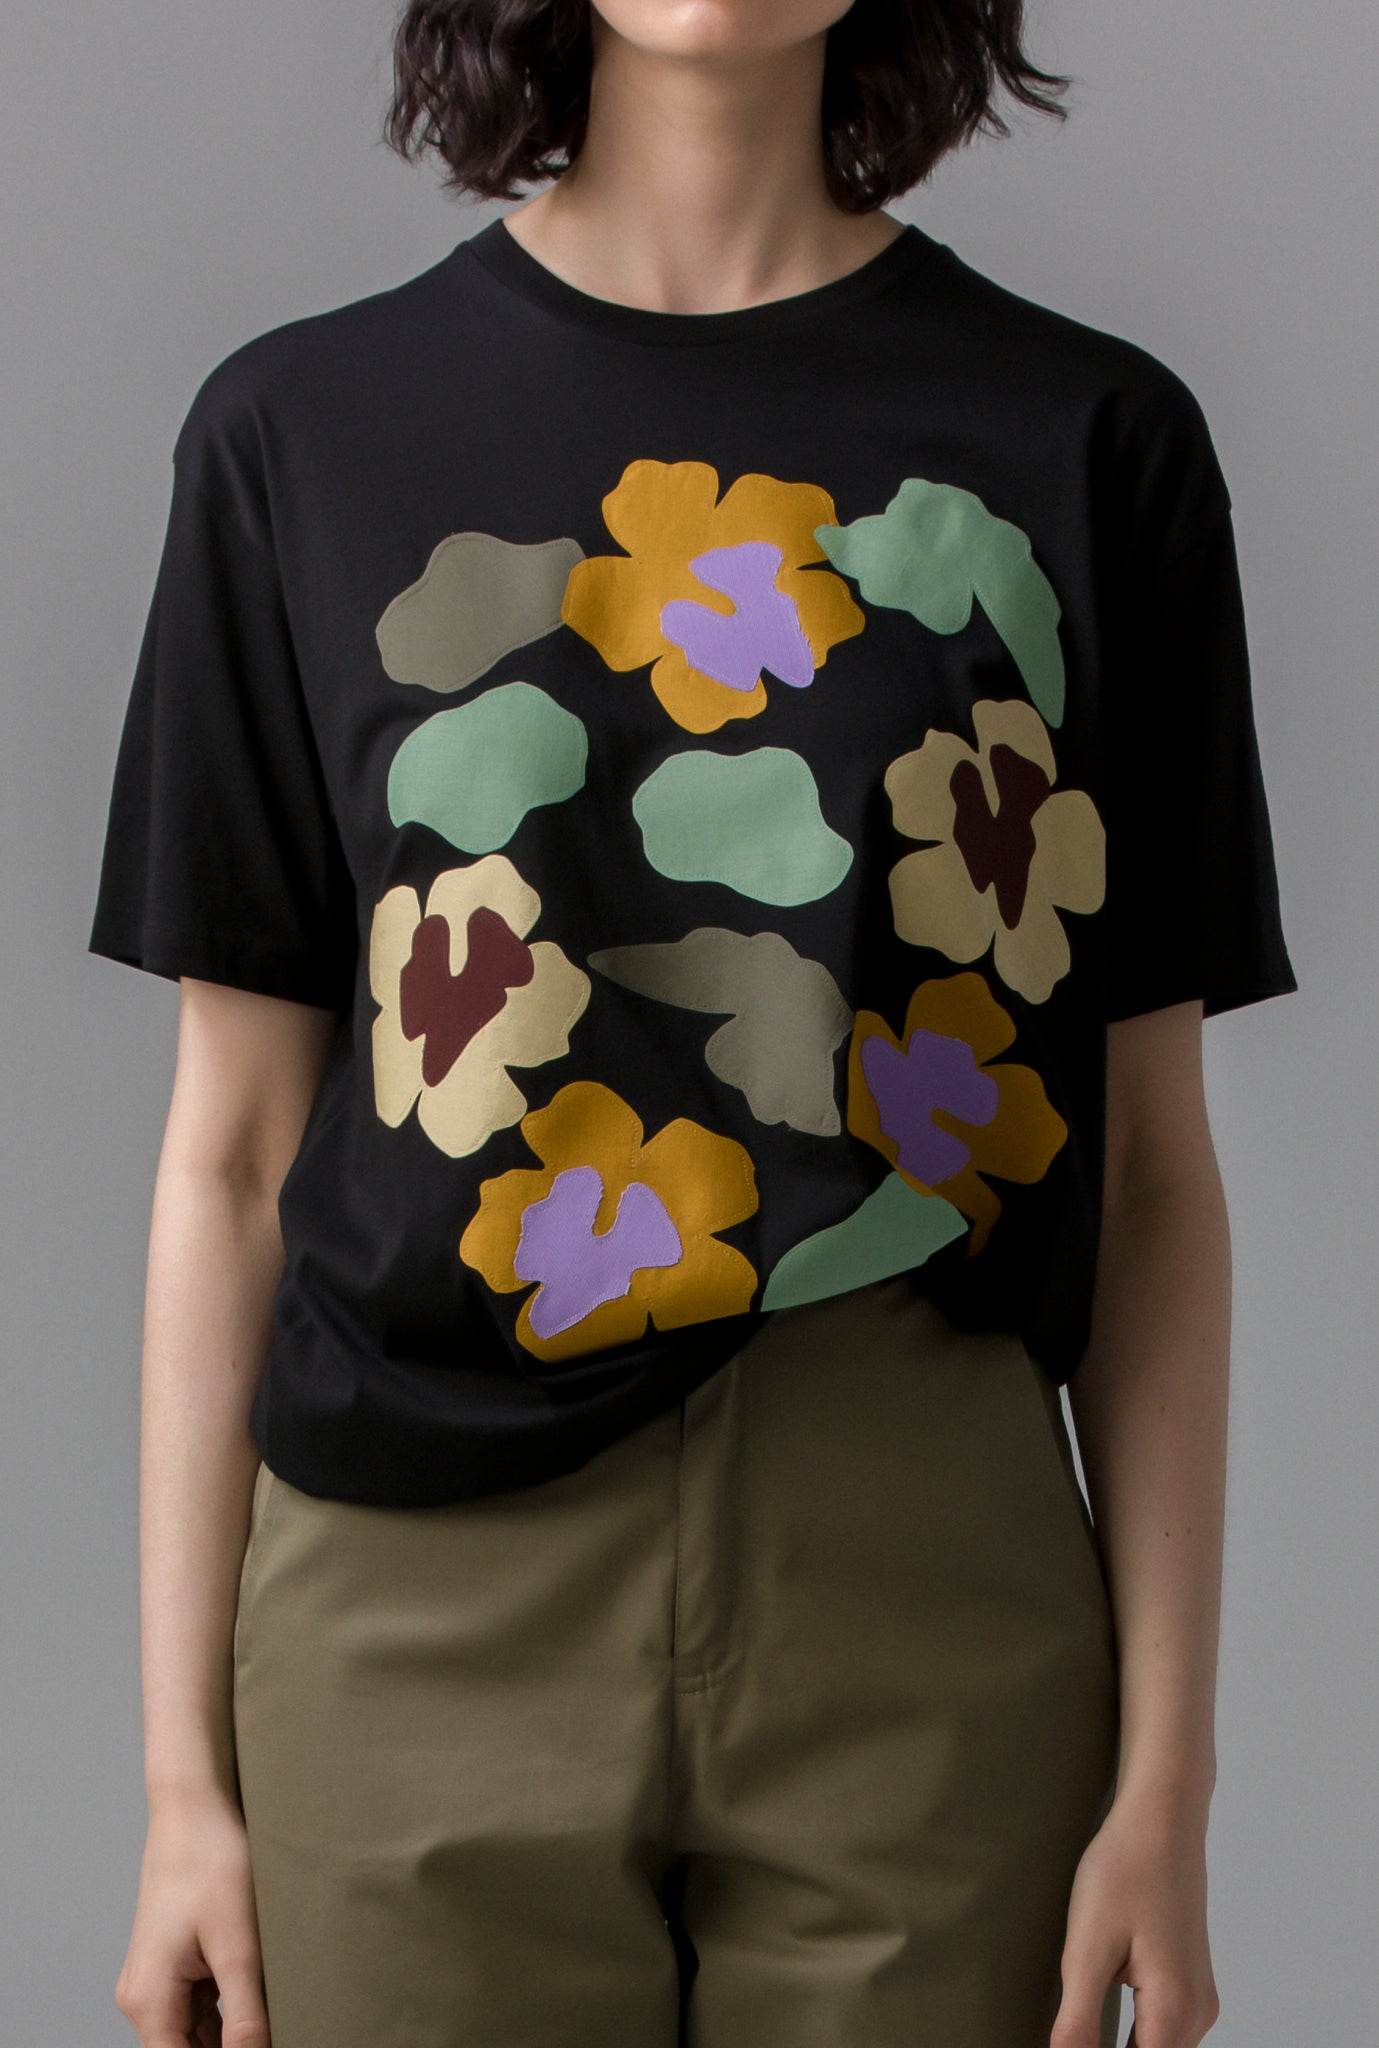 Floating Blossom Tee